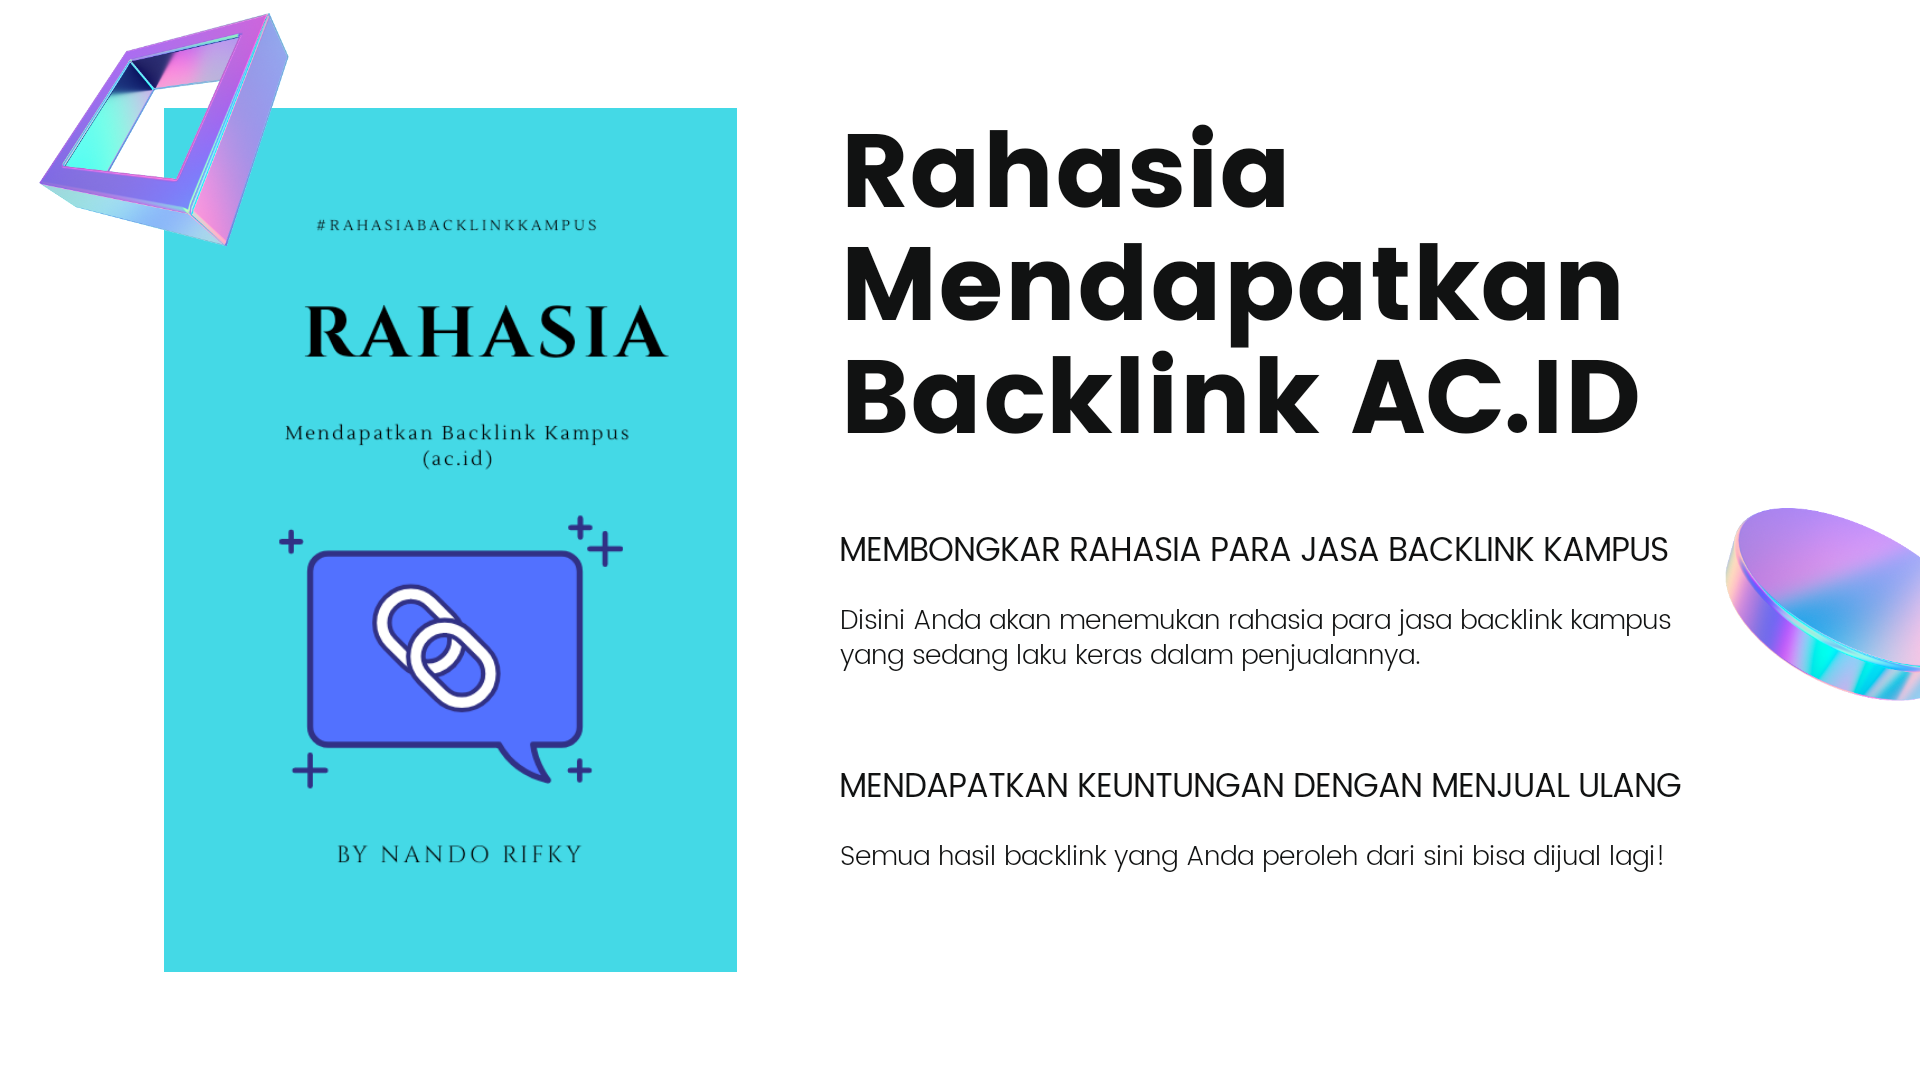 Jasa Backlink Kampus